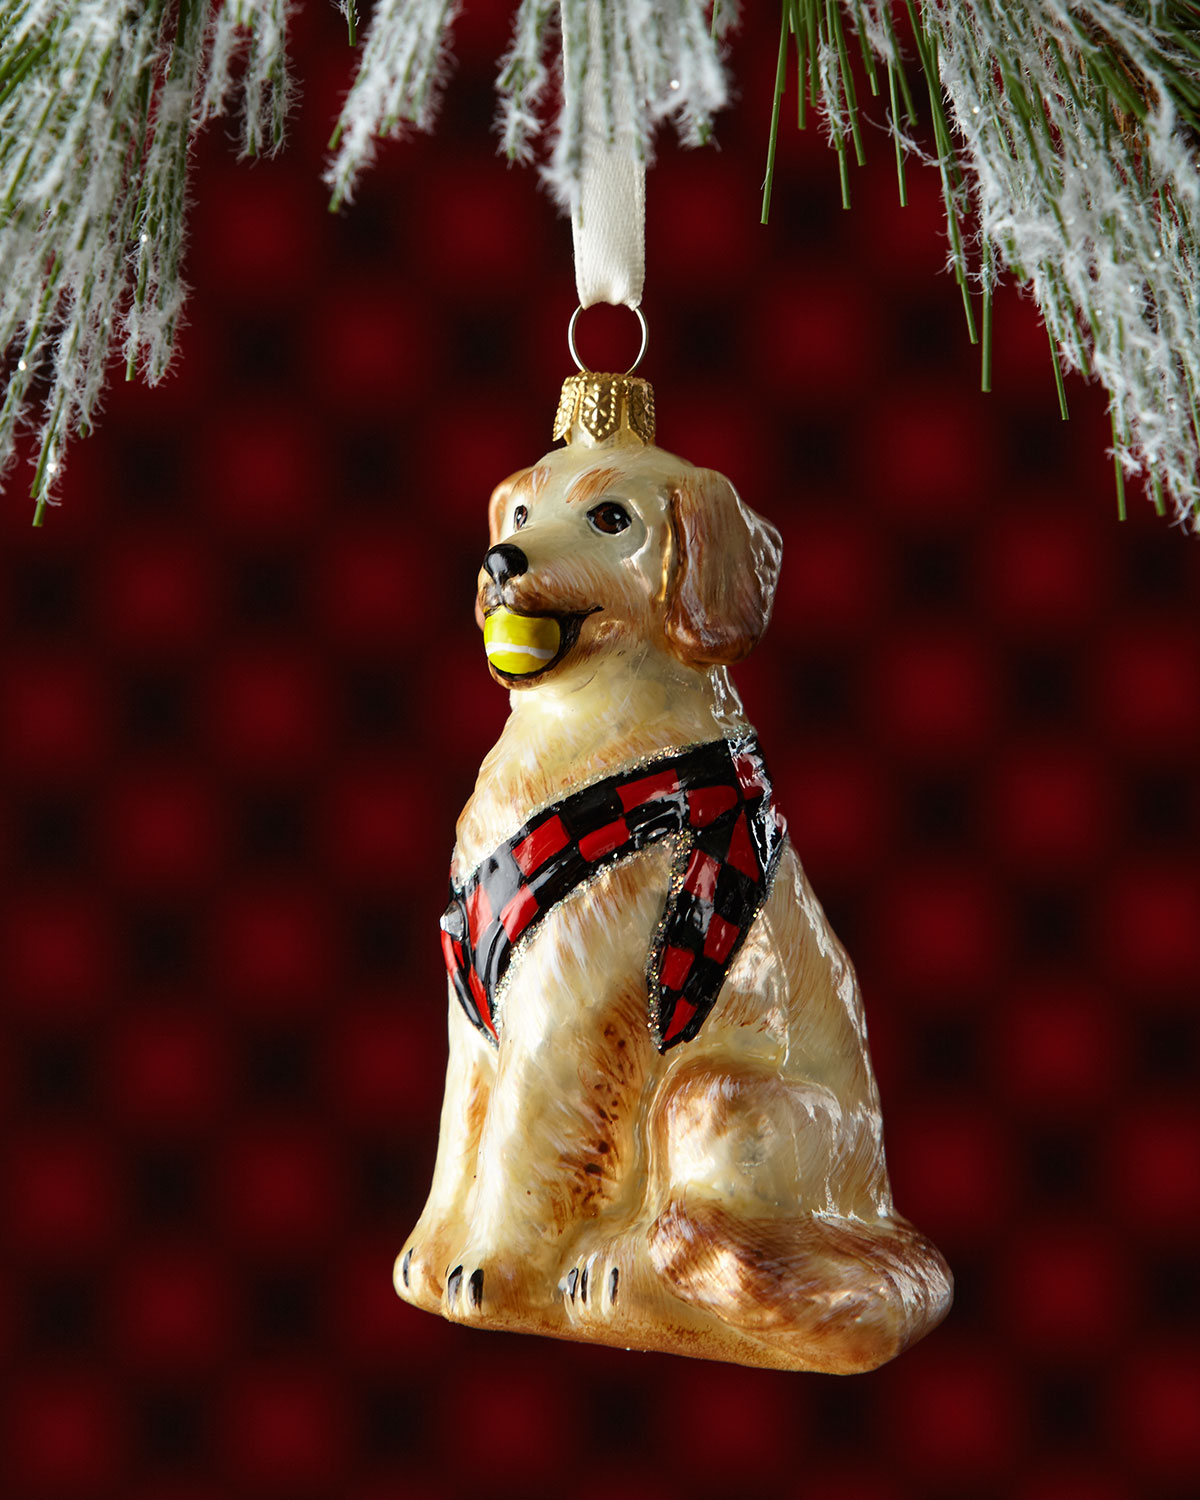 Wedding Gift Stores Nyc: Joy To The World Collectibles Golden Retriever Dog With